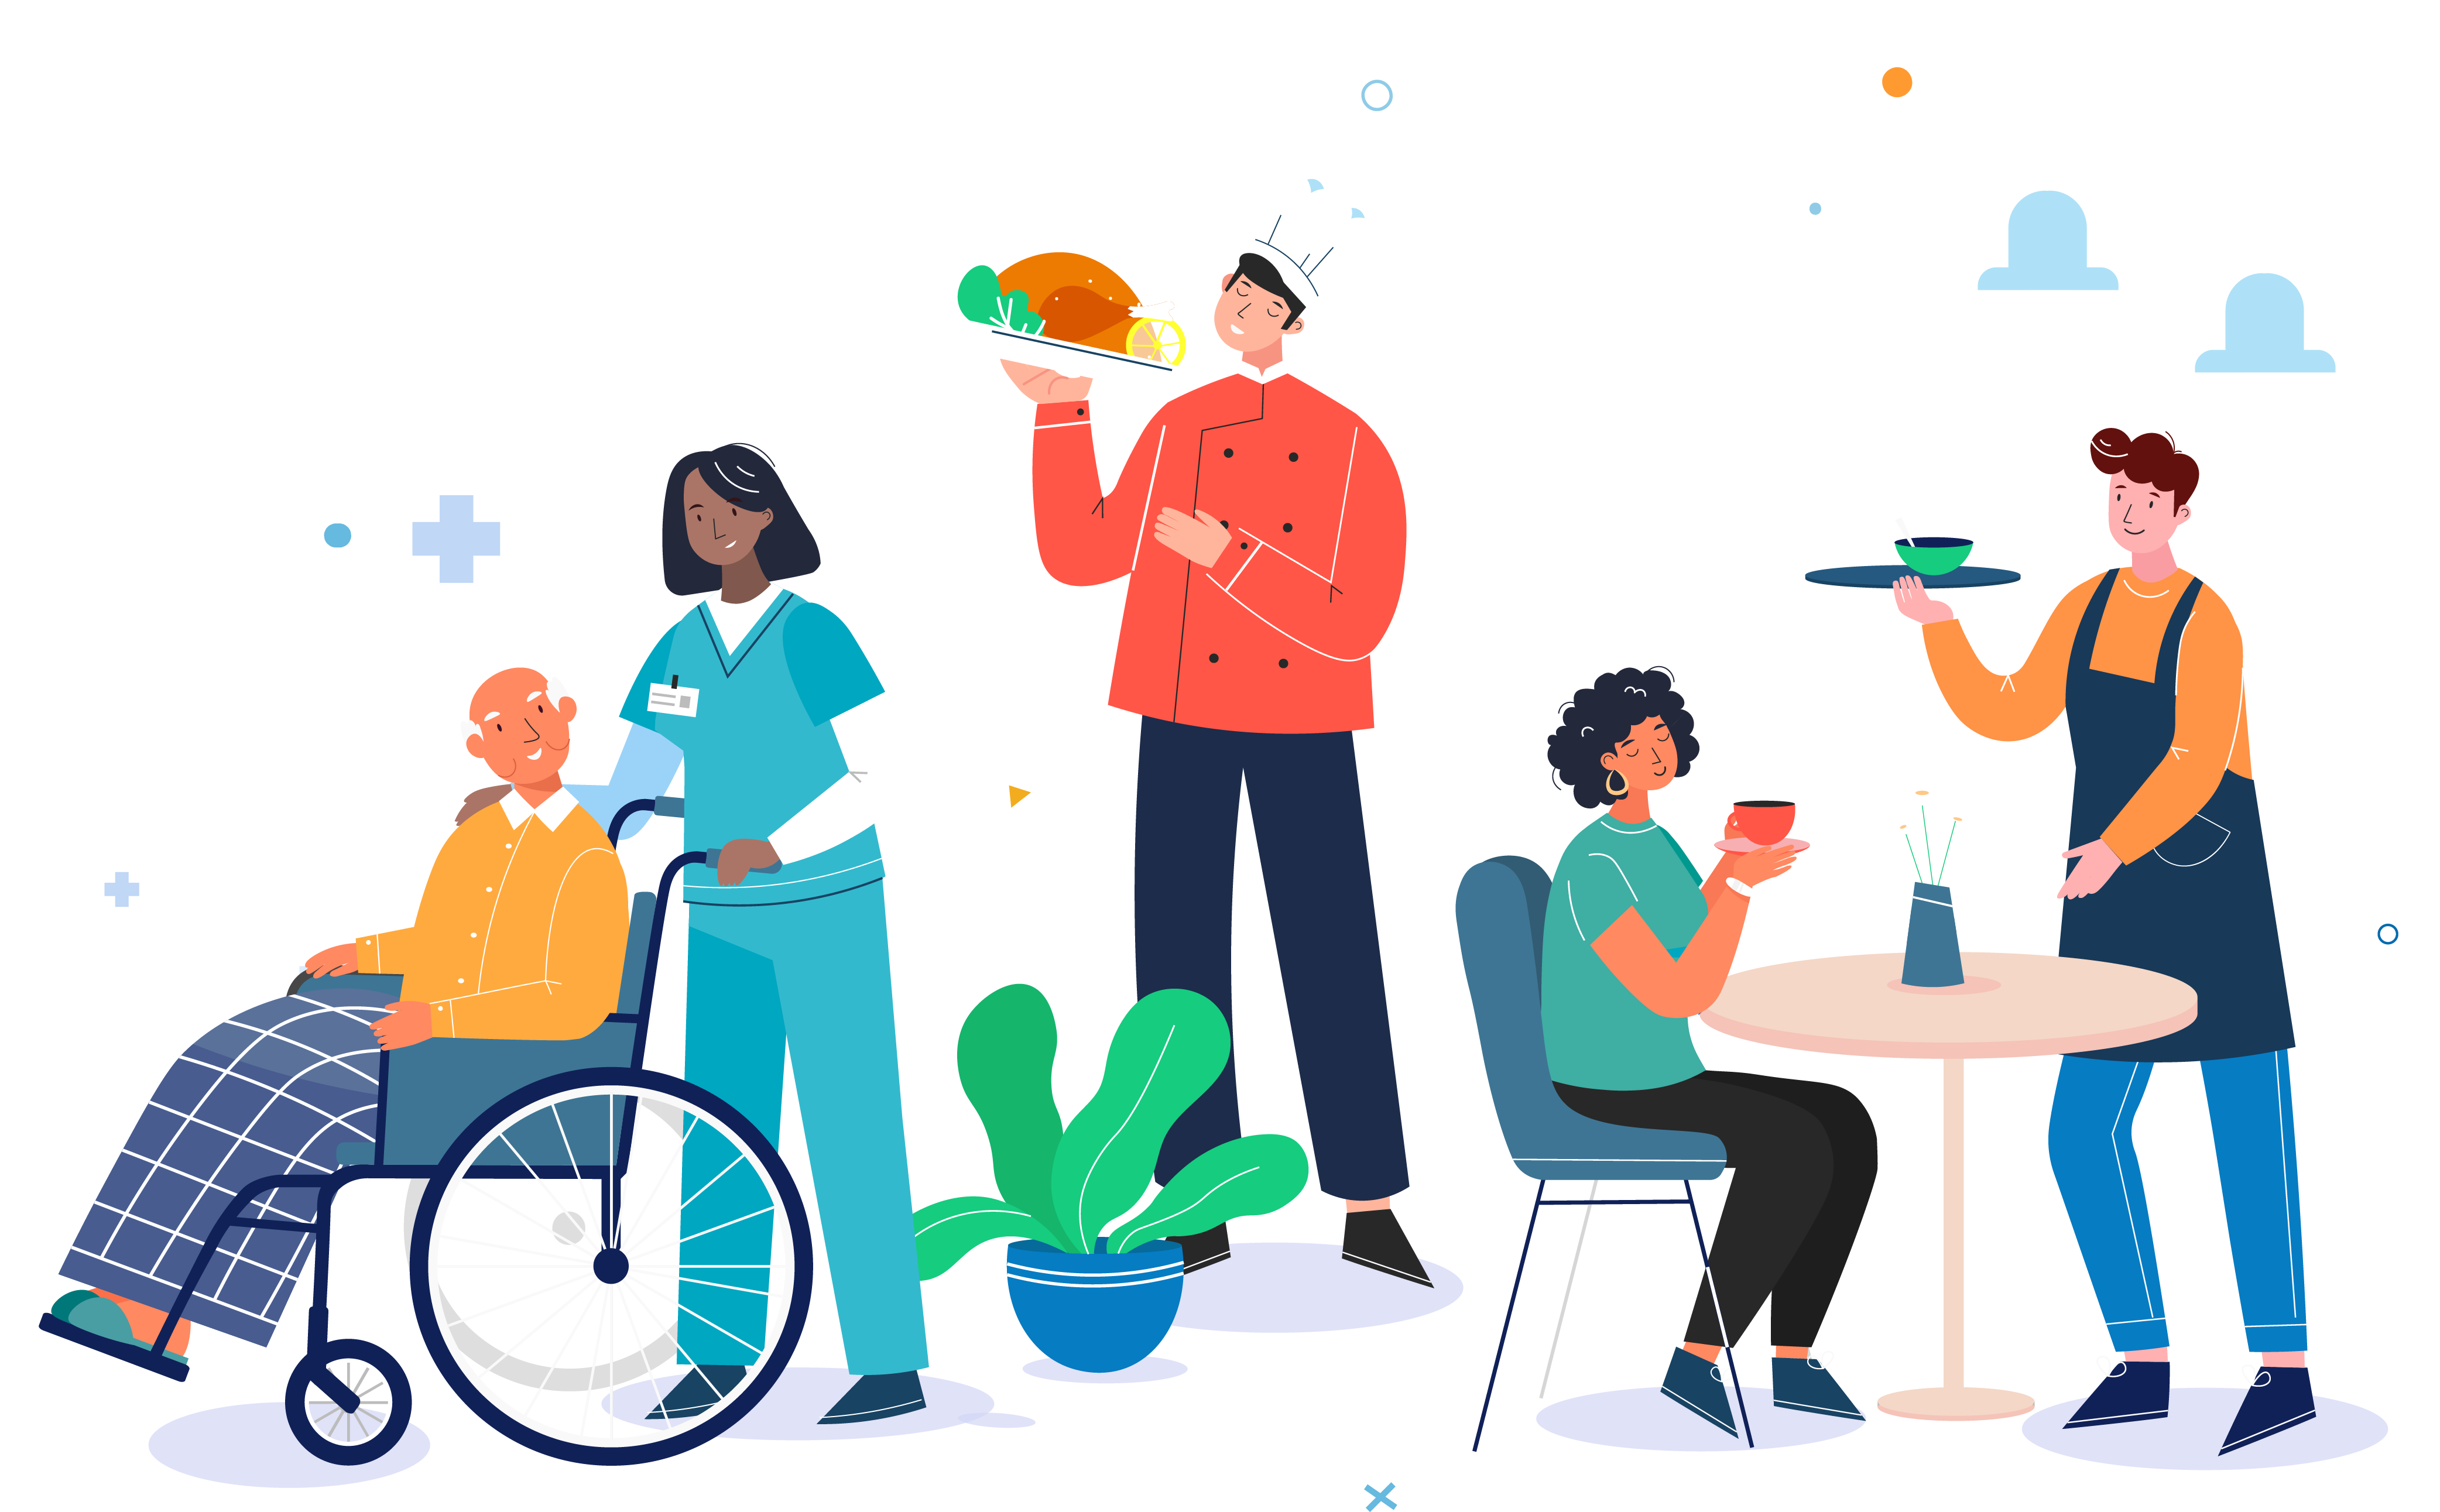 Illustration with workers from different industries